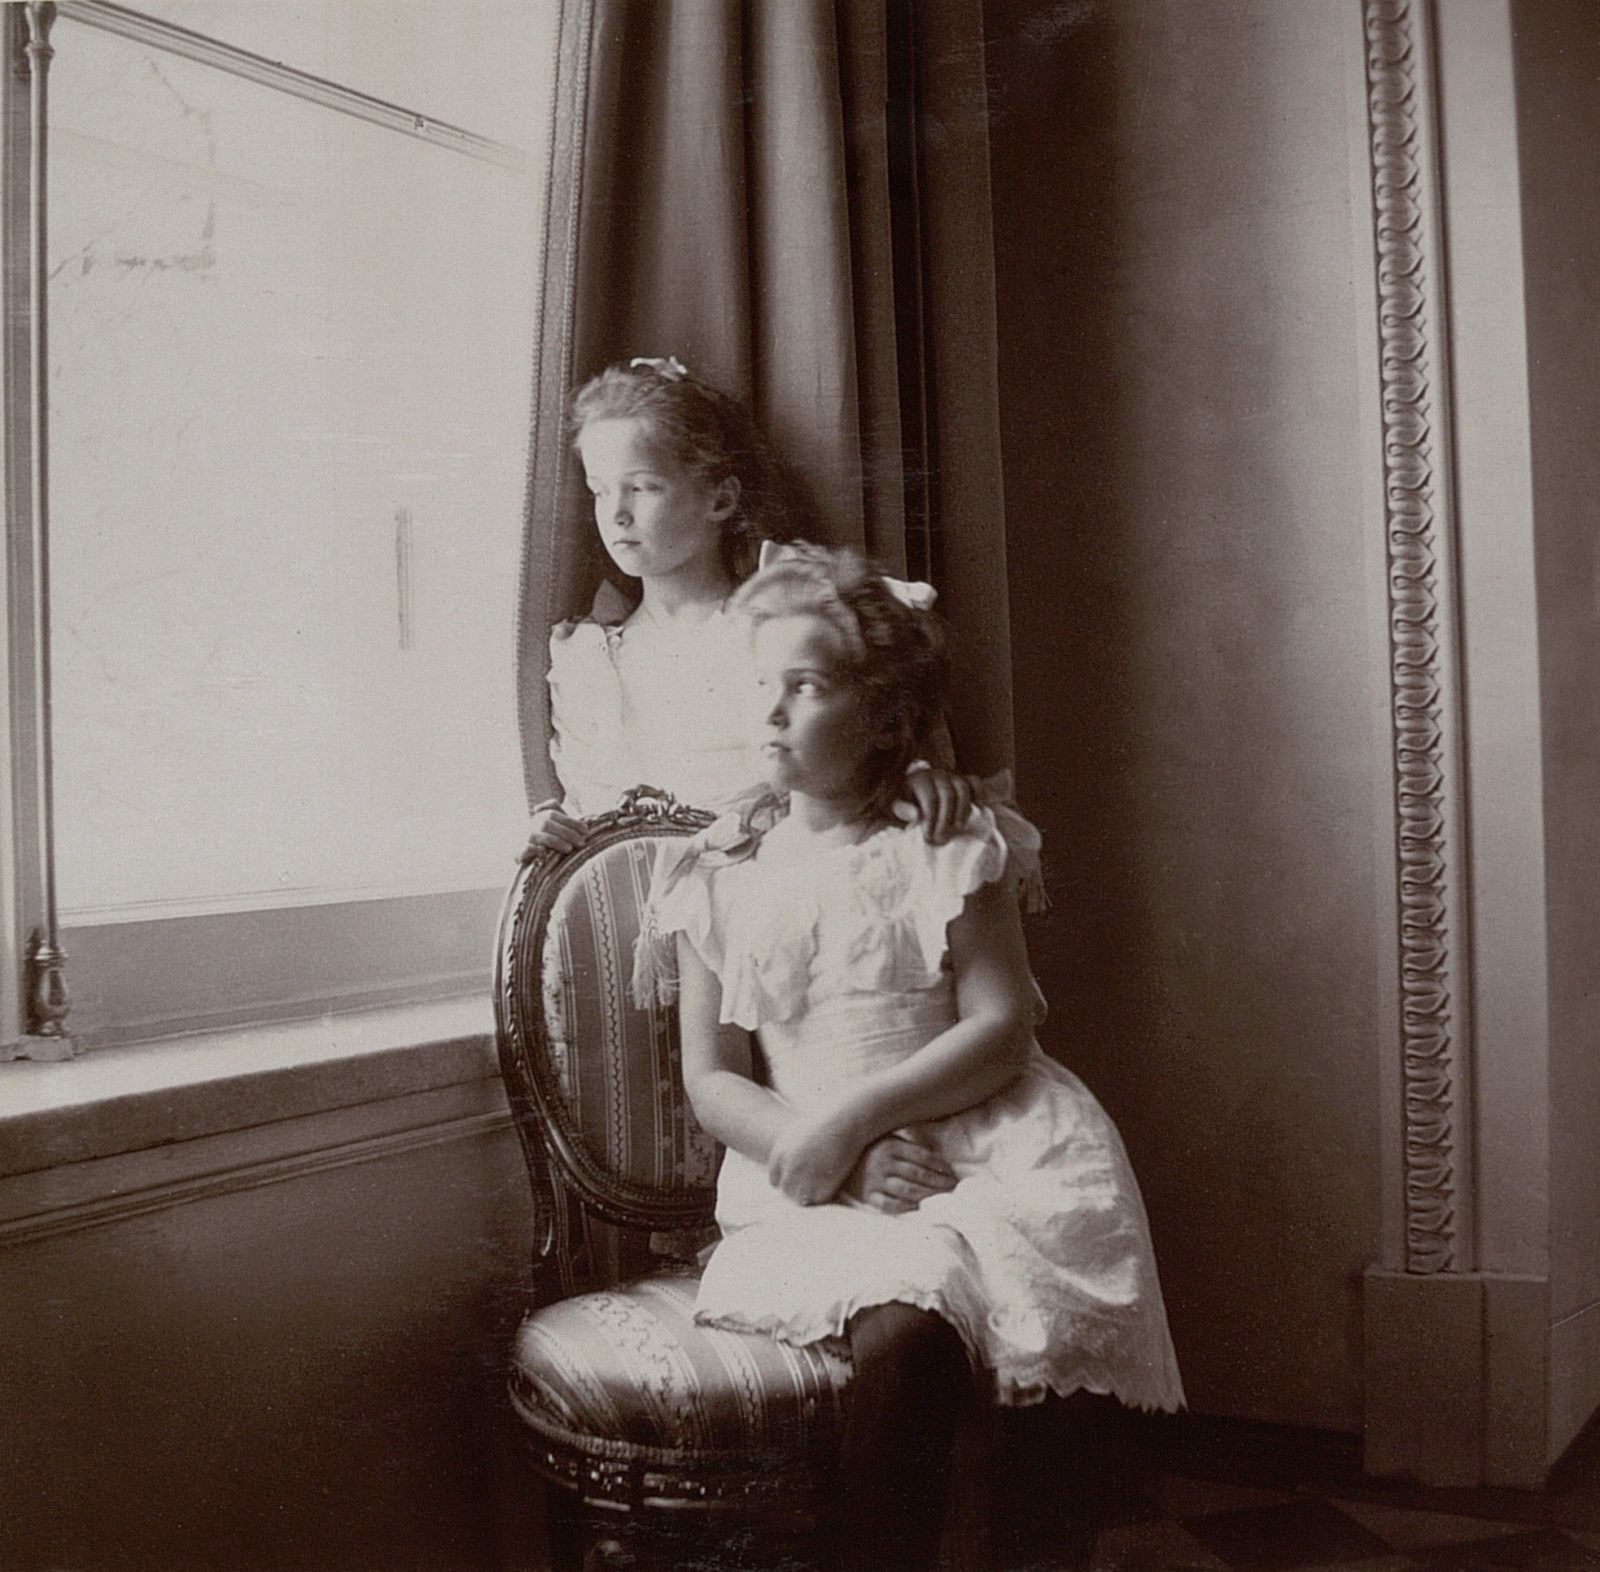 Grand Duchesses Olga and Maria 1905-1906.